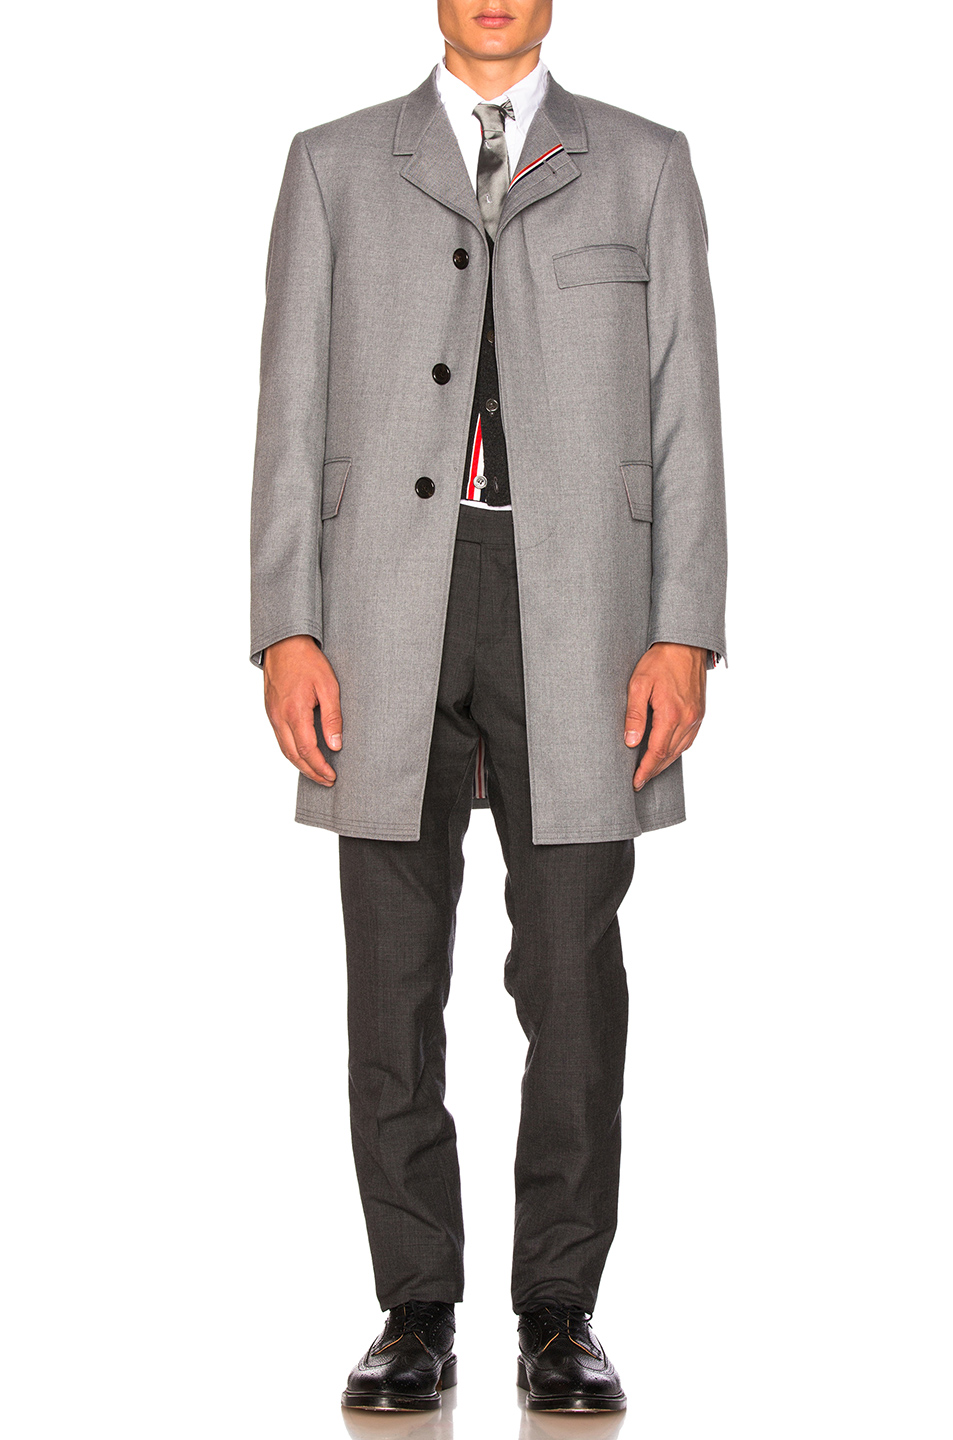 Photo of Thom Browne Classic School Uniform Twill Chesterfield Overcoat in Gray - shop Thom Browne menswear